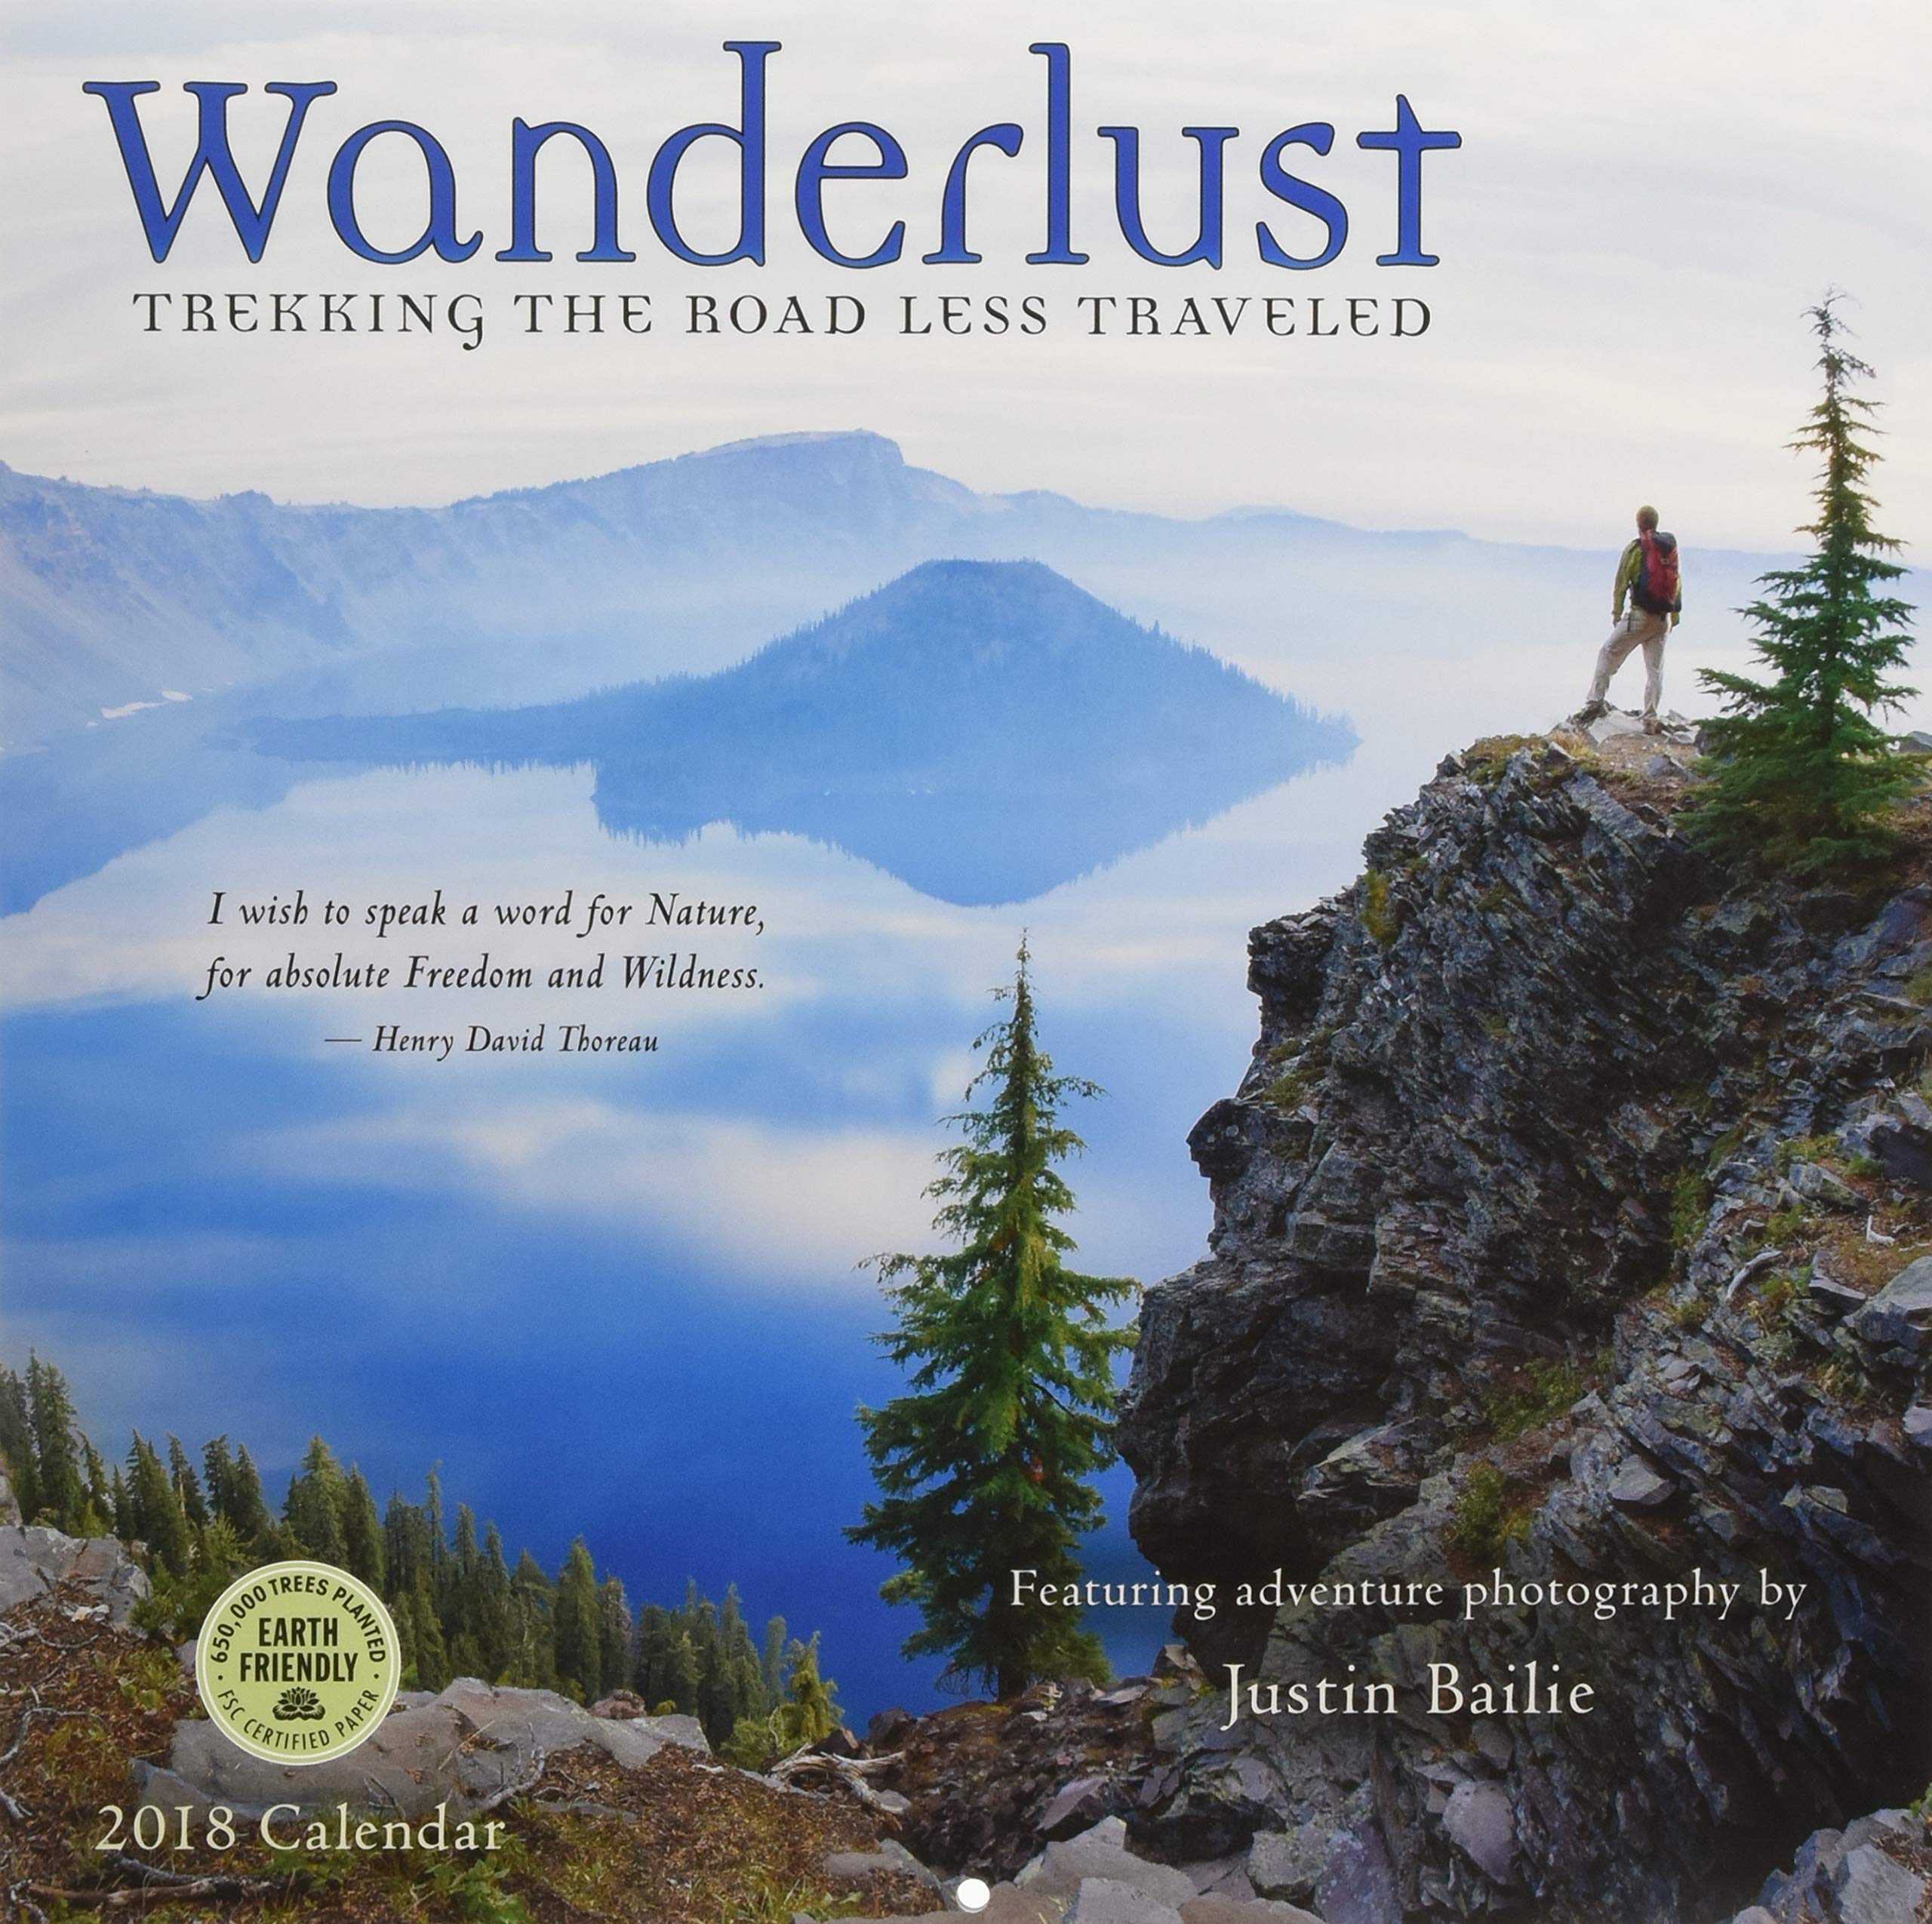 Wanderlust 2018 Wall Calendar: Trekking the Road Less Traveled - Featuring Adventure Photography by Justin Bailie by Amber Lotus Publishing